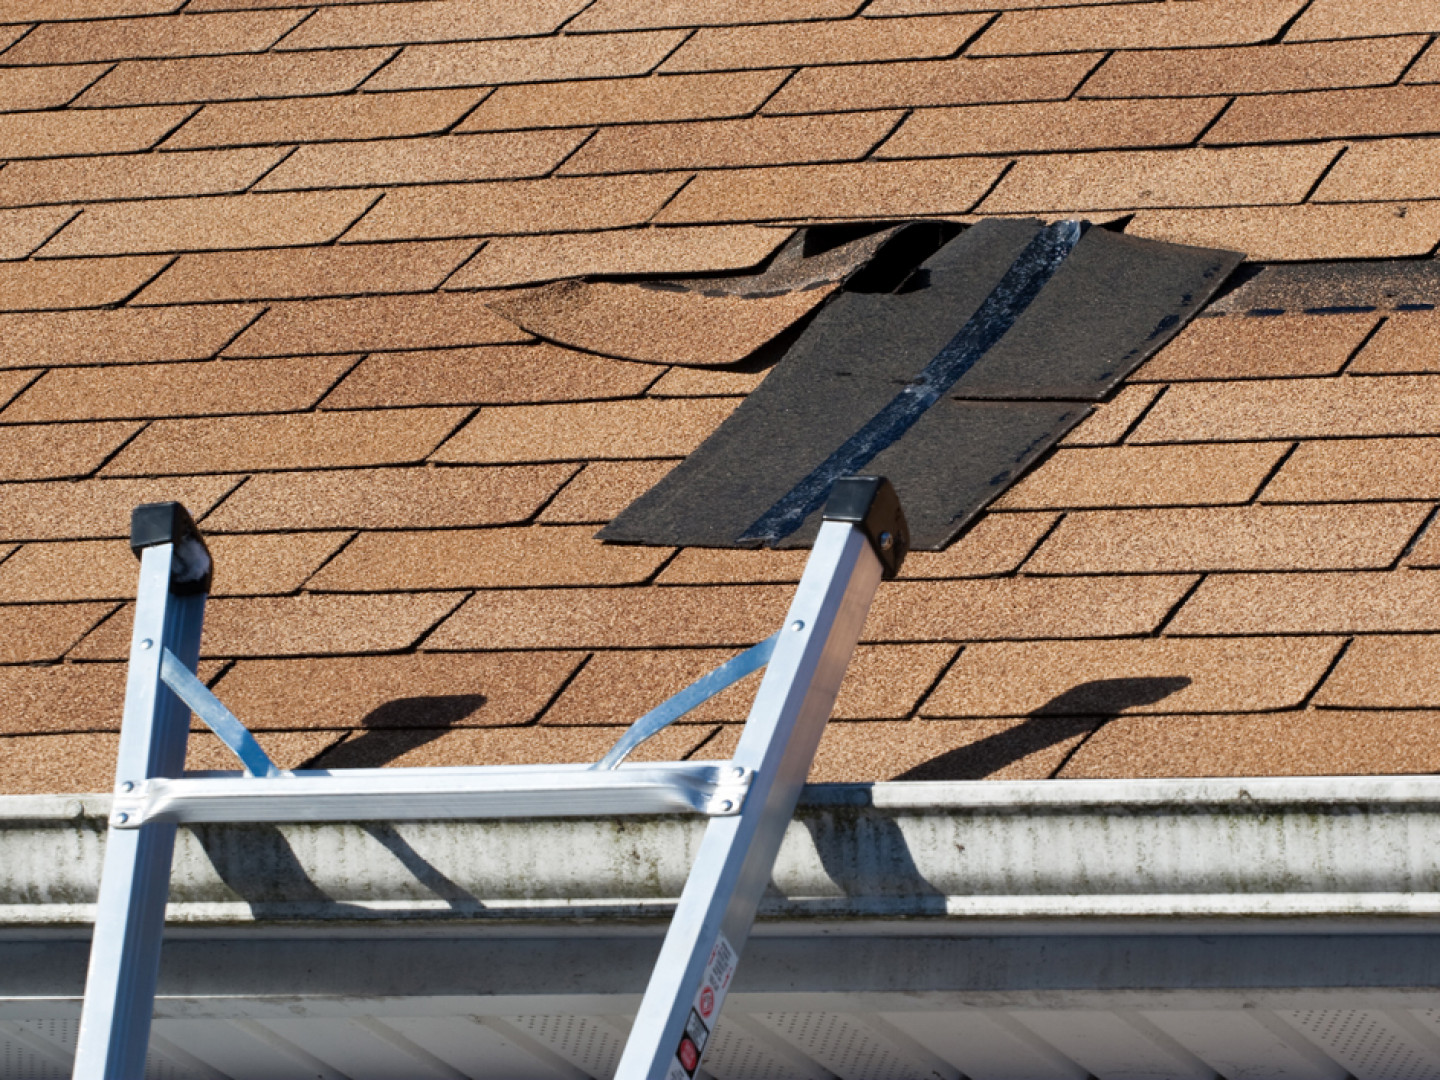 Excellent service and revolutionary roof replacement methods